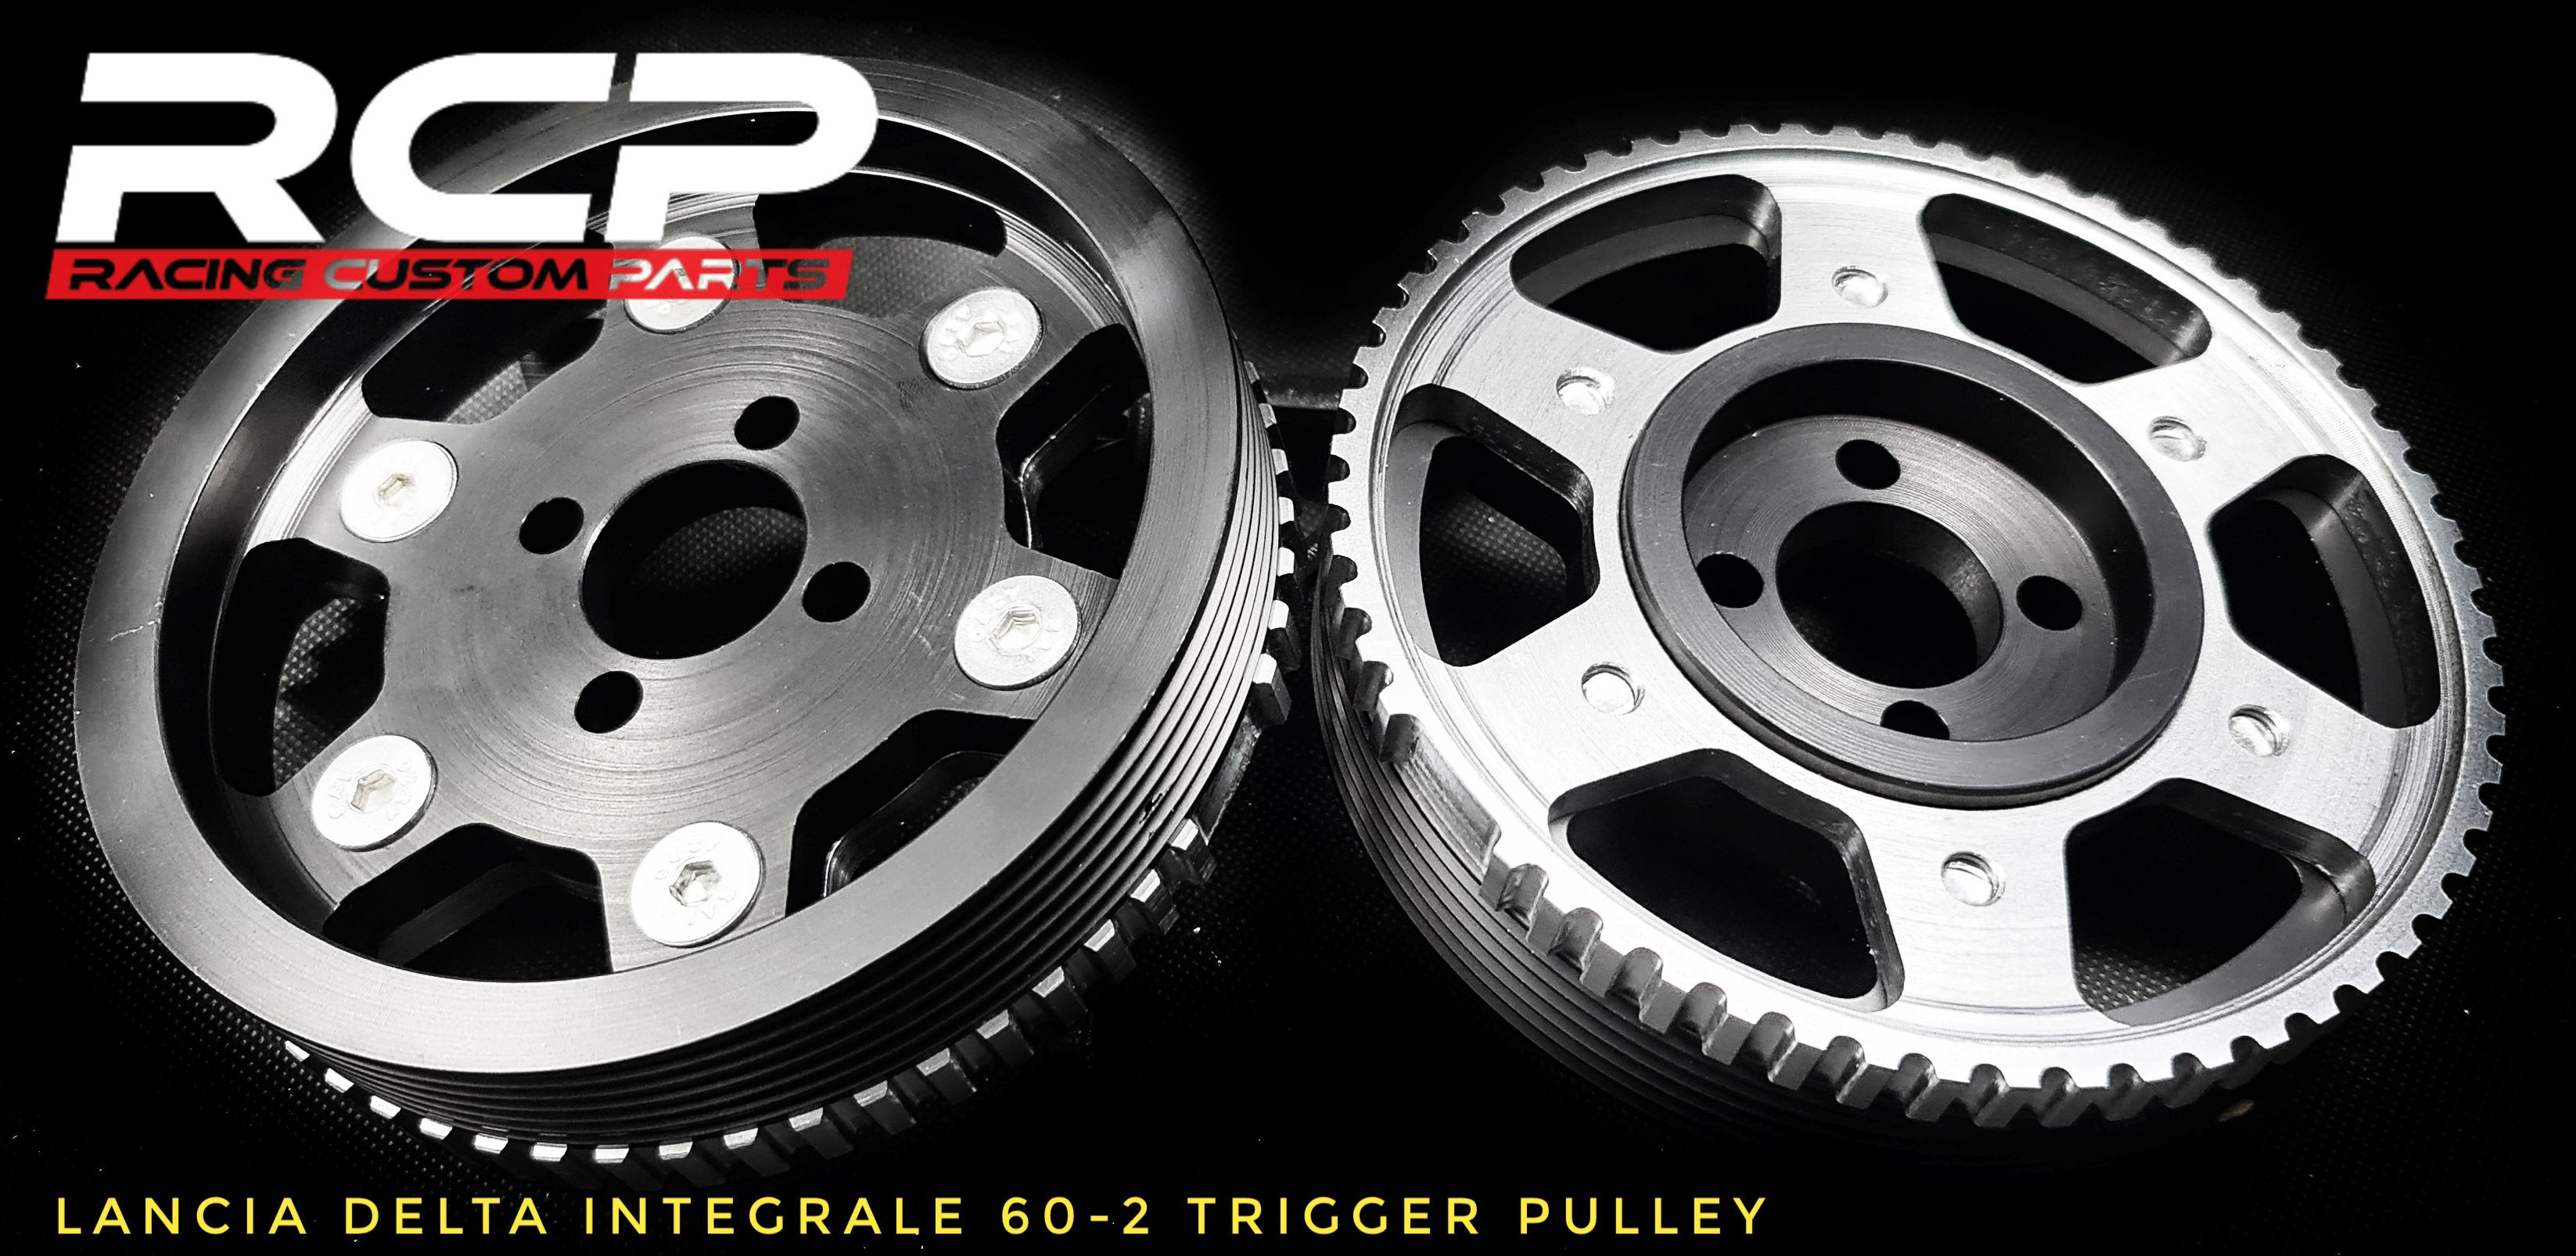 lancia detla integrale 2.0 turbo 60-2 trigger pulley vems emu standalone racing custom parts billet cnc